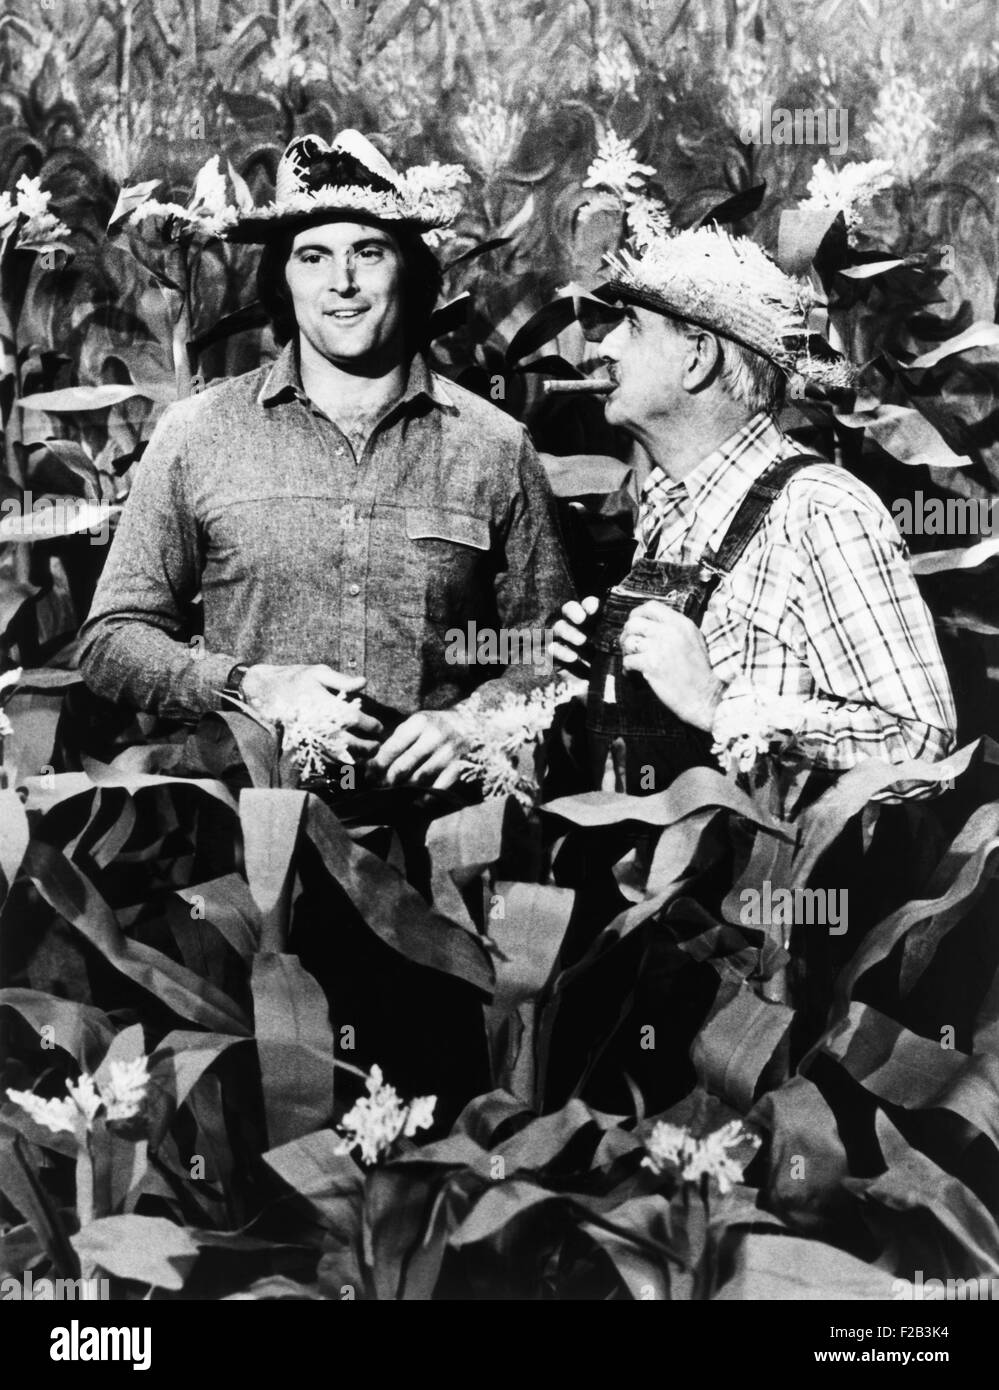 Olympic Champion turned entertainer, Bruce Jenner appears on 'Hee Haw'. Jenner (left) visits with venerable - Stock Image